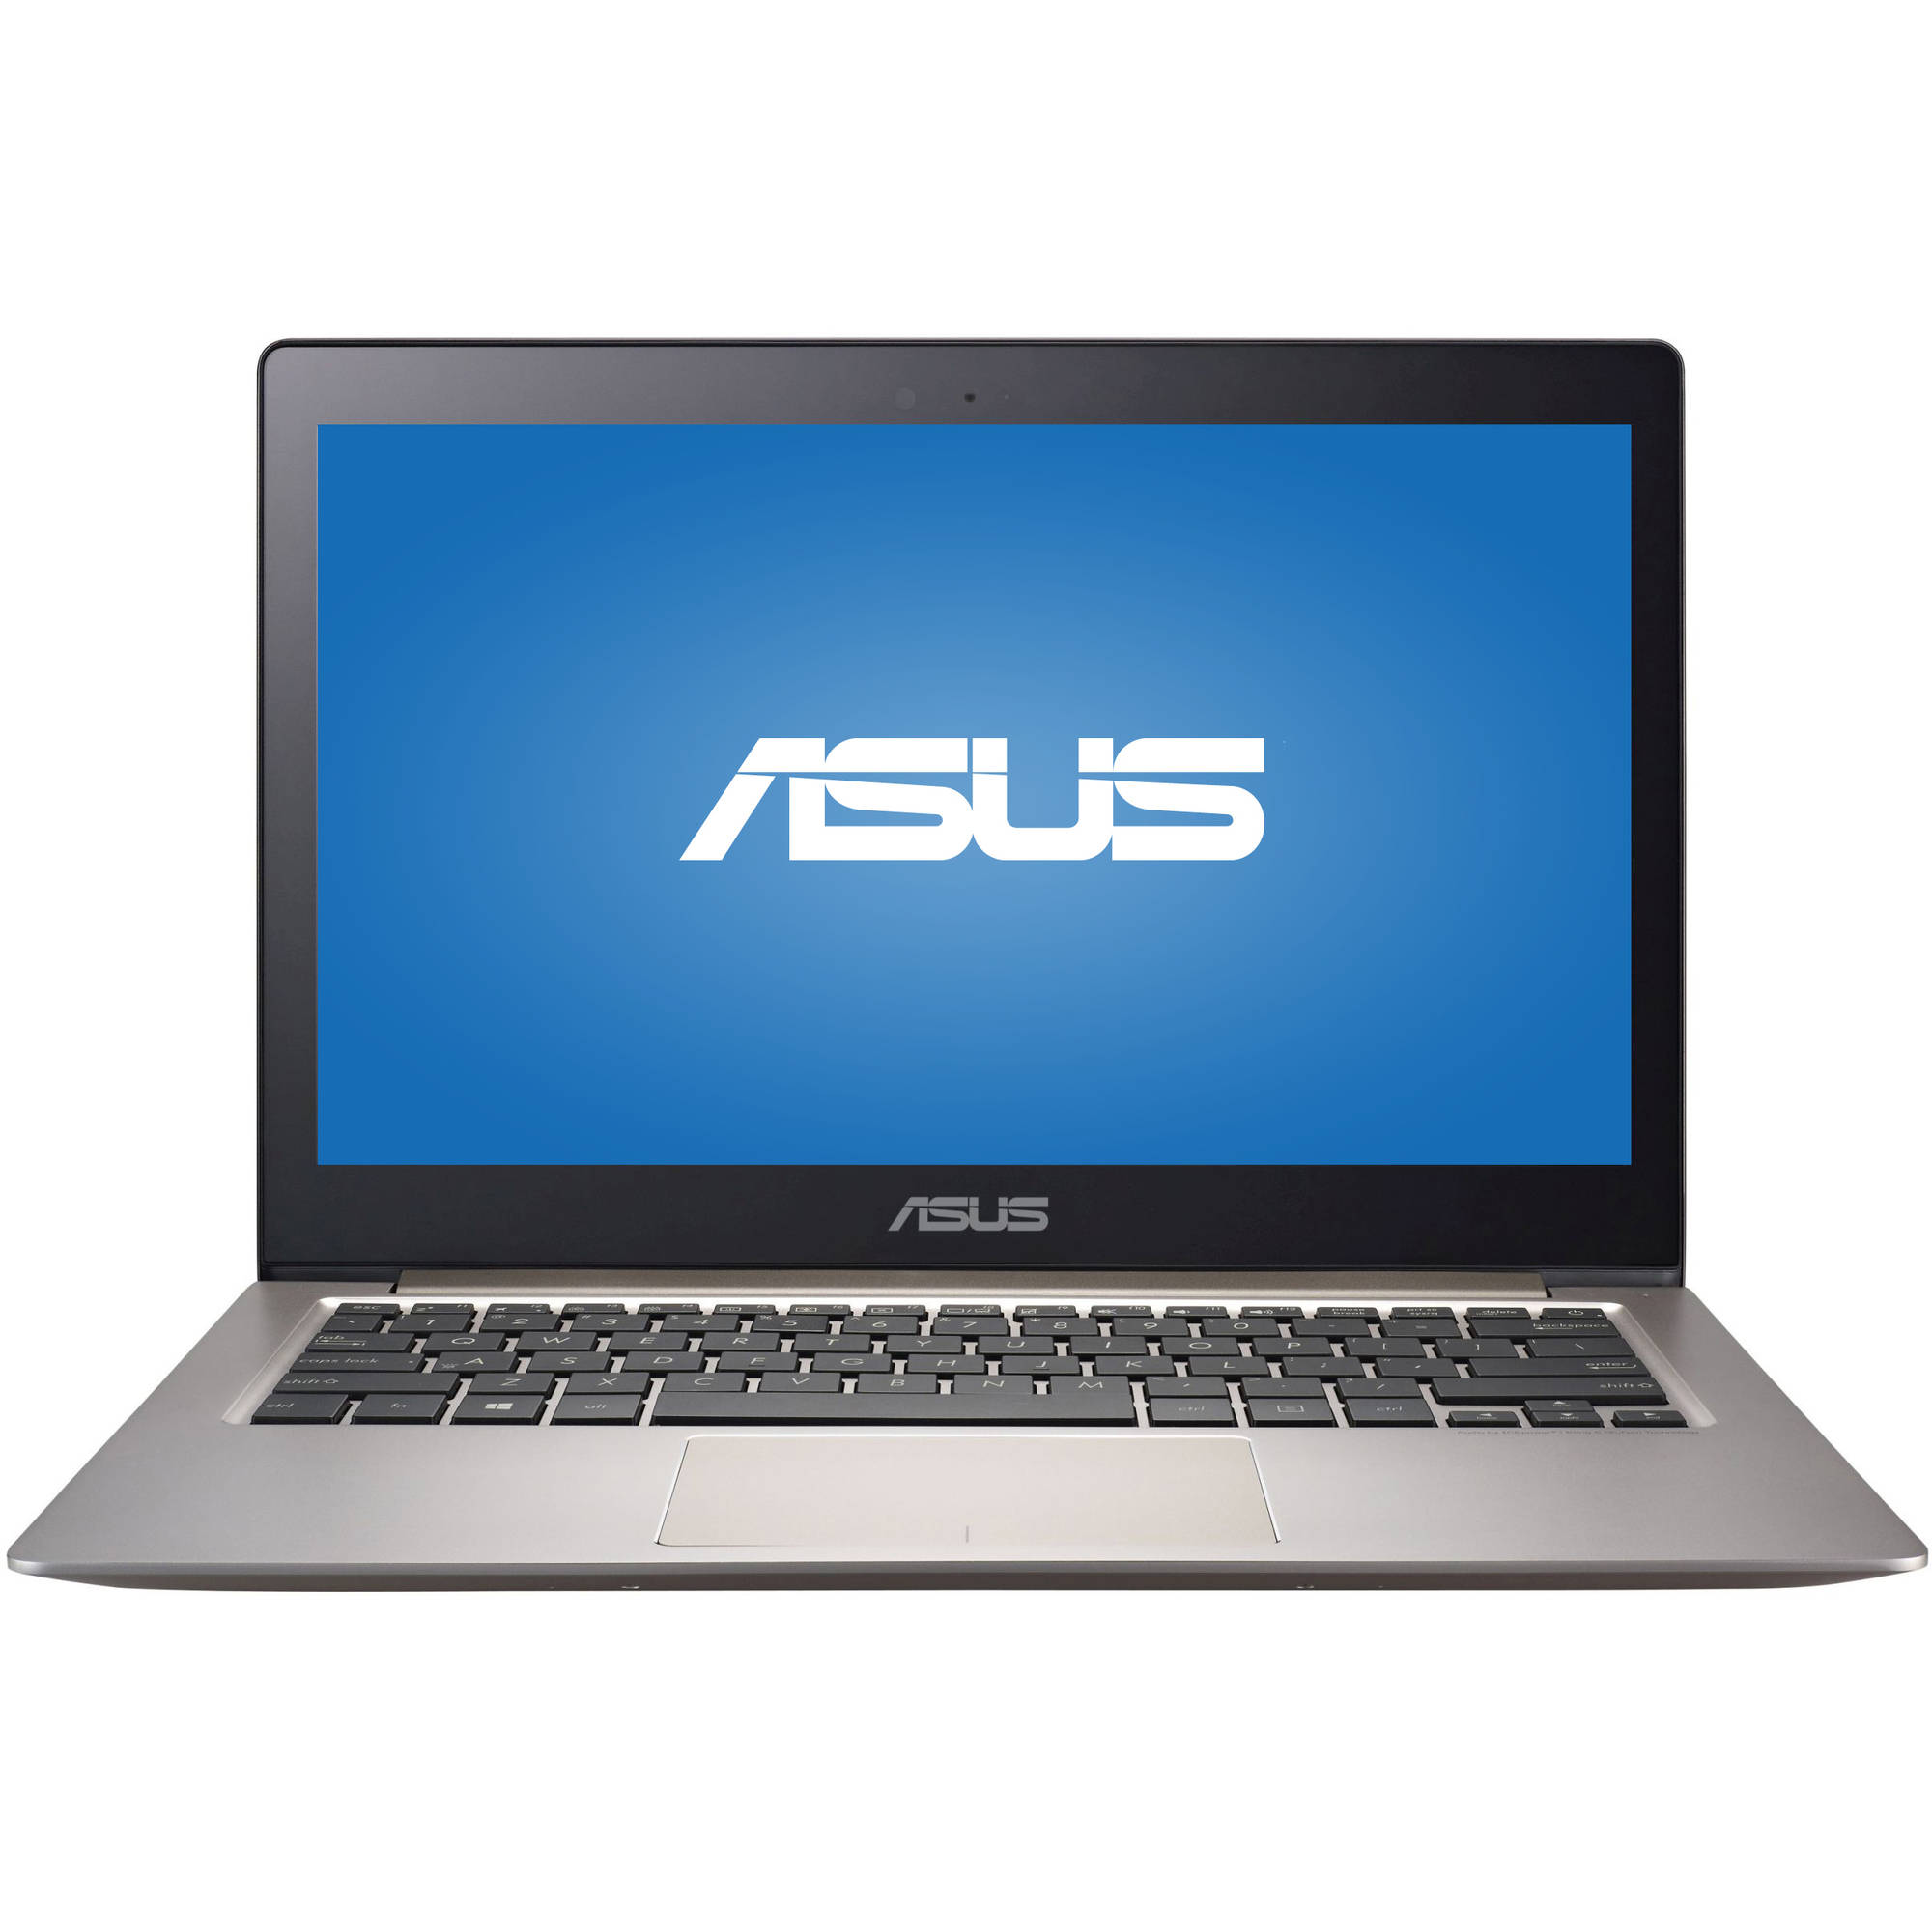 "ASUS Smokey Brown 13.3"" UX303UA-DH51T Zenbook Laptop PC with Intel Core i5-6200U Processor, 8GB Memory, 256GB SSD and Windows 10"